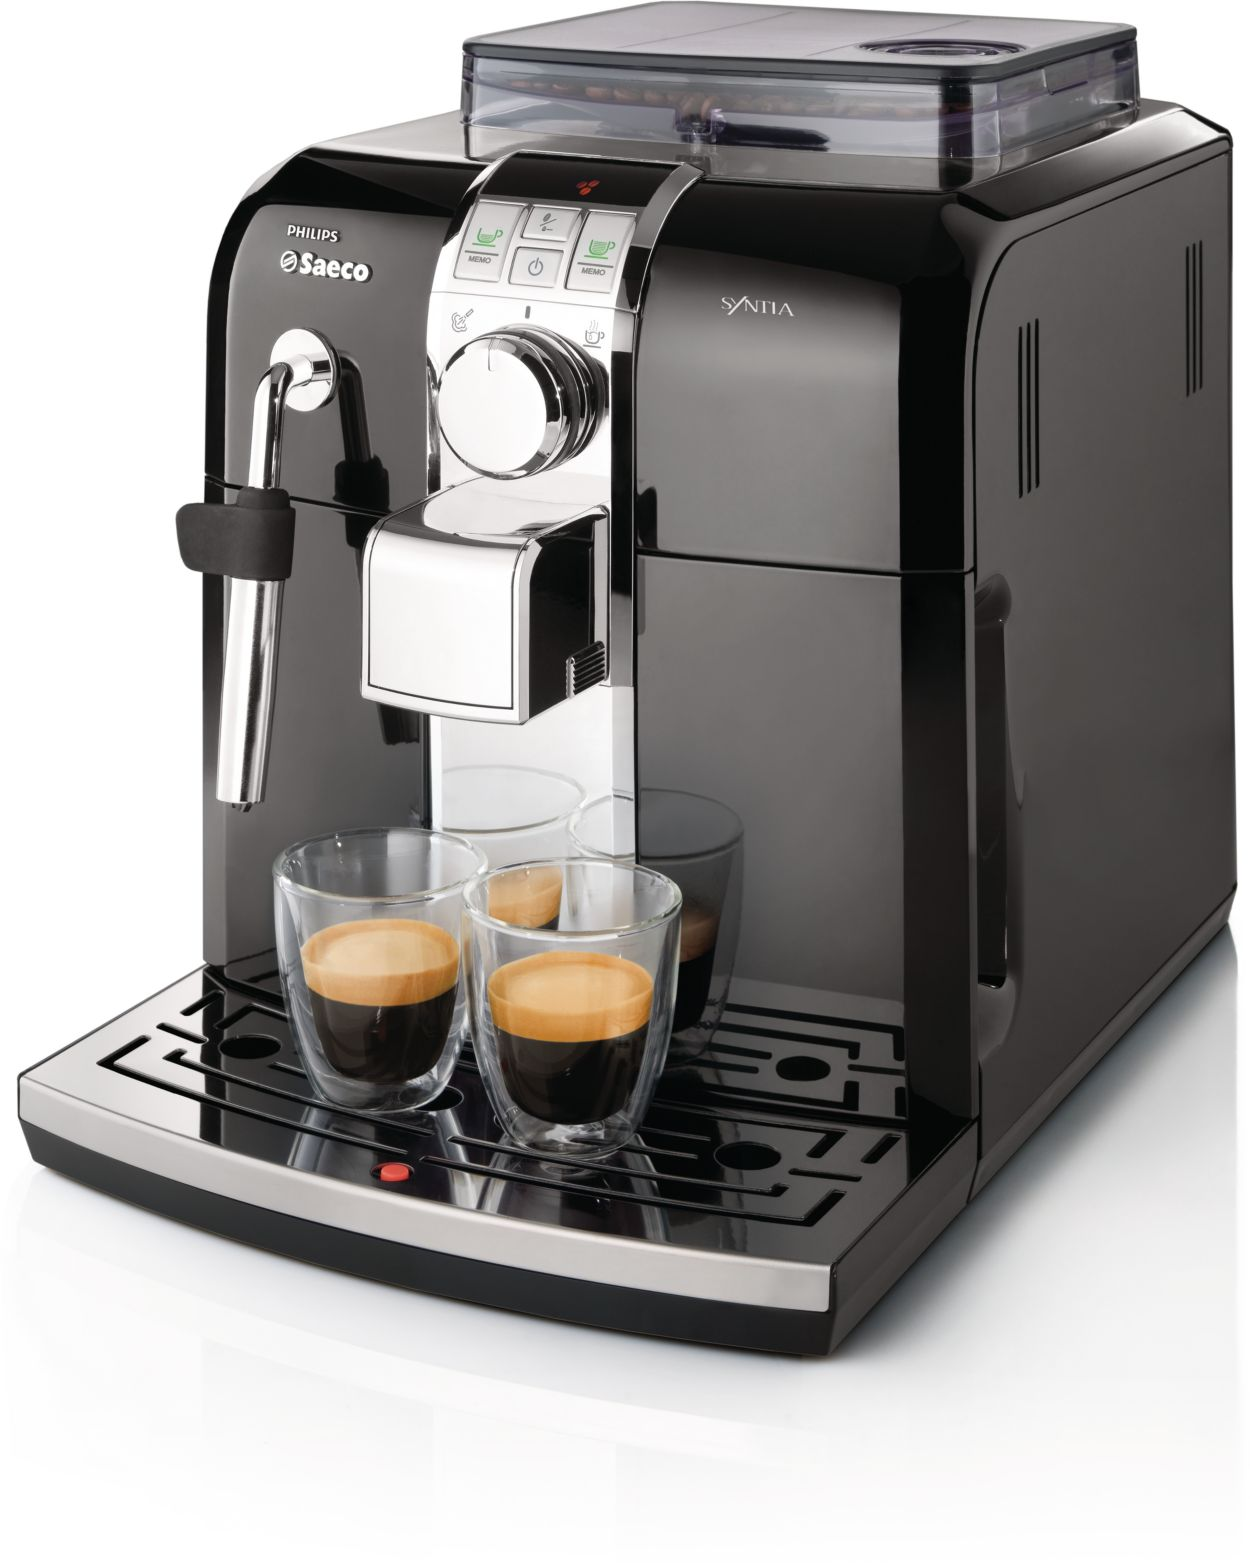 How Does Philips Coffee Maker Work : Syntia Super-automatic espresso machine HD8833/47 Saeco